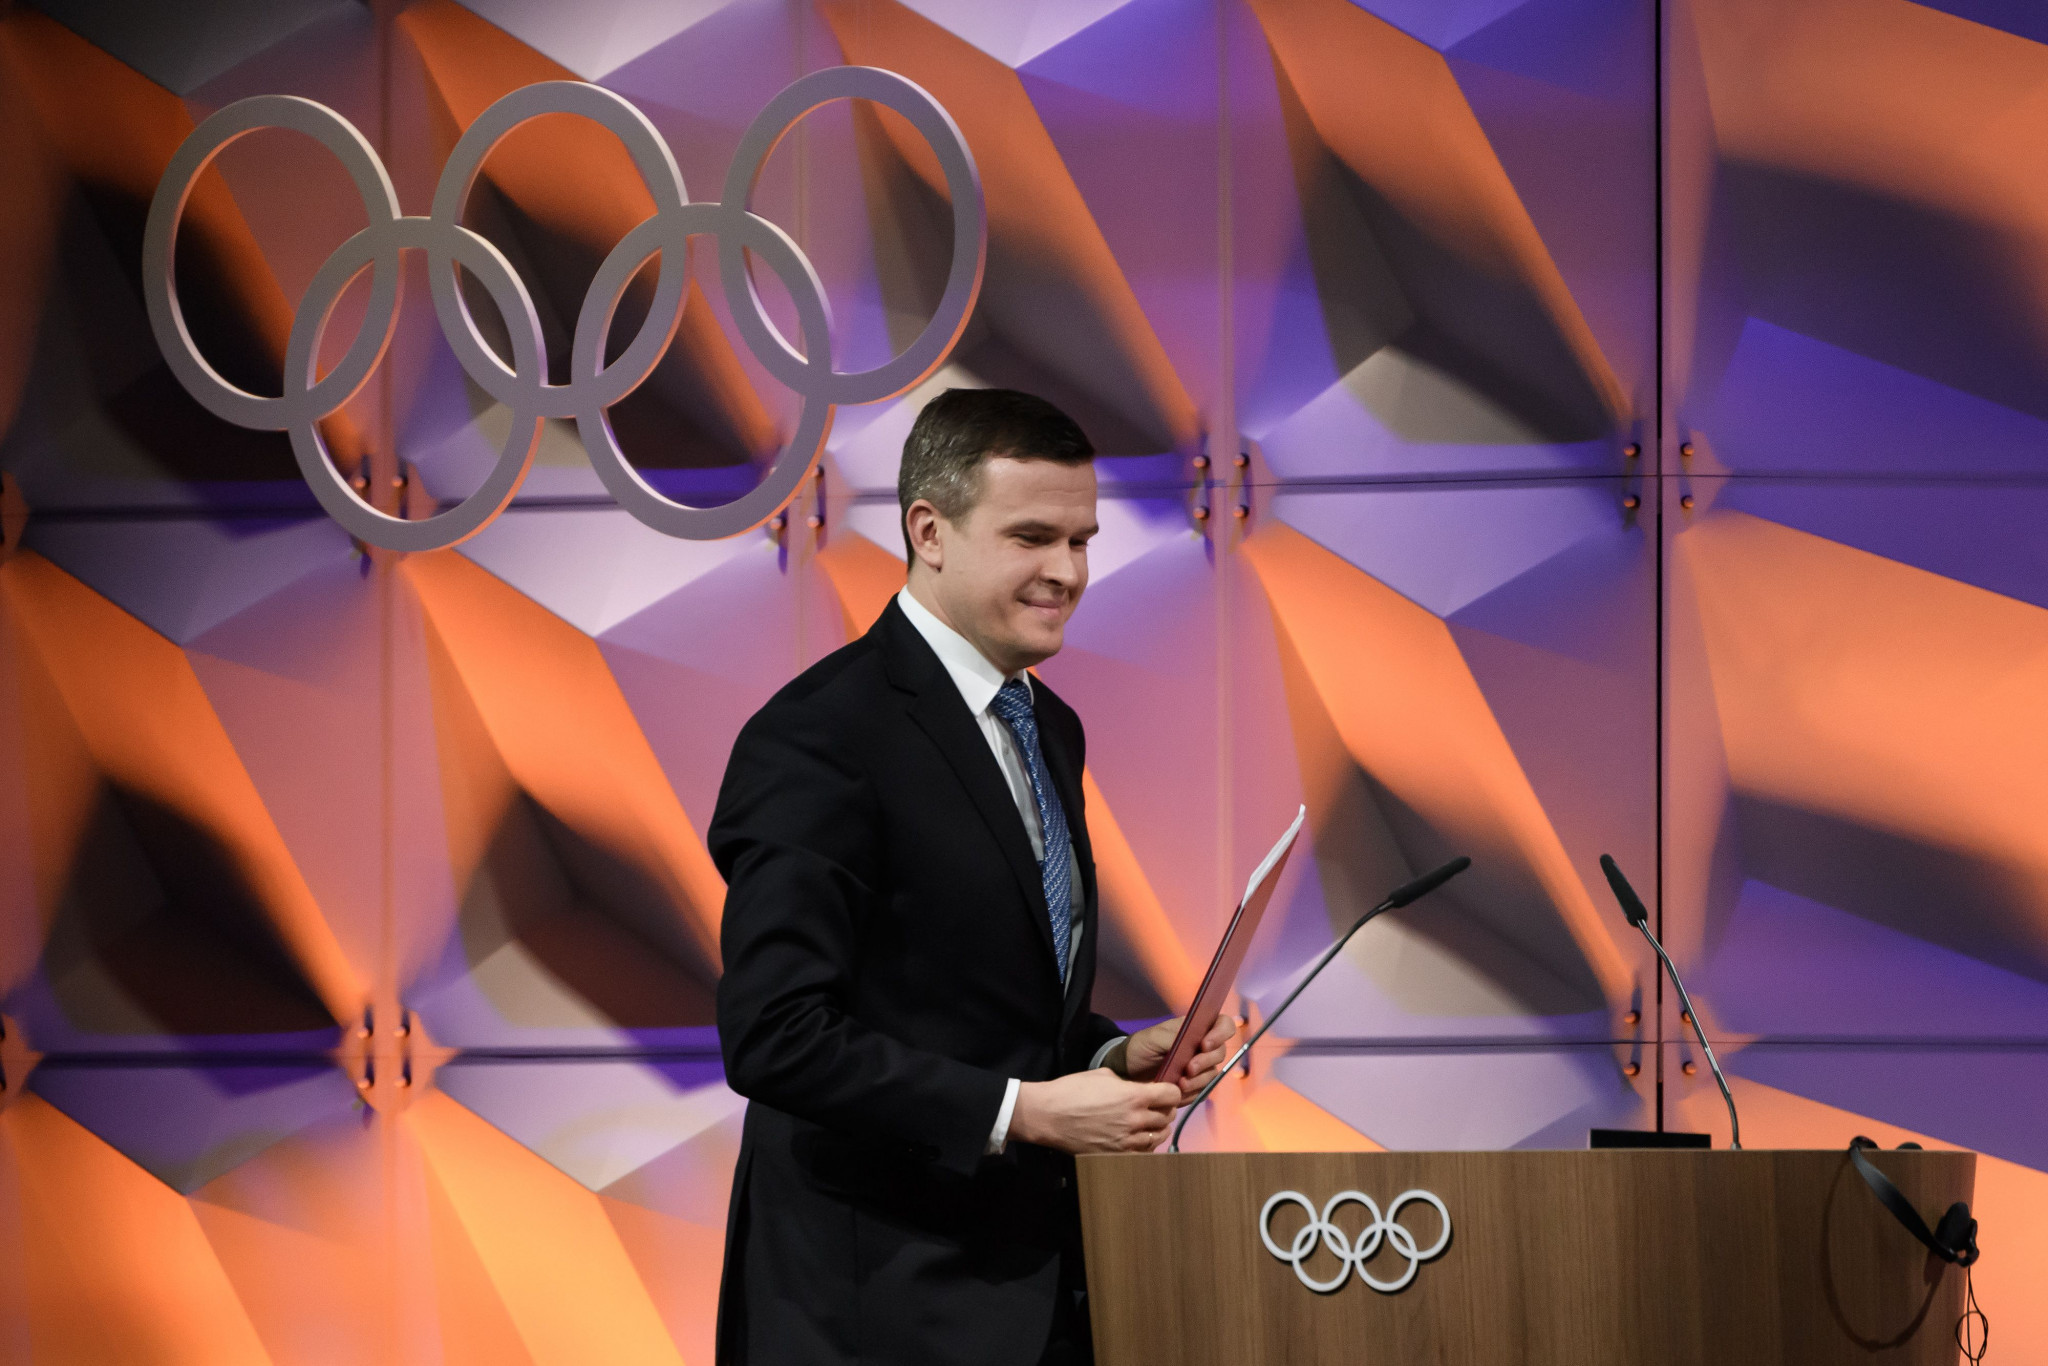 Witold Banka gave his first presentation to the IOC as WADA President ©IOC